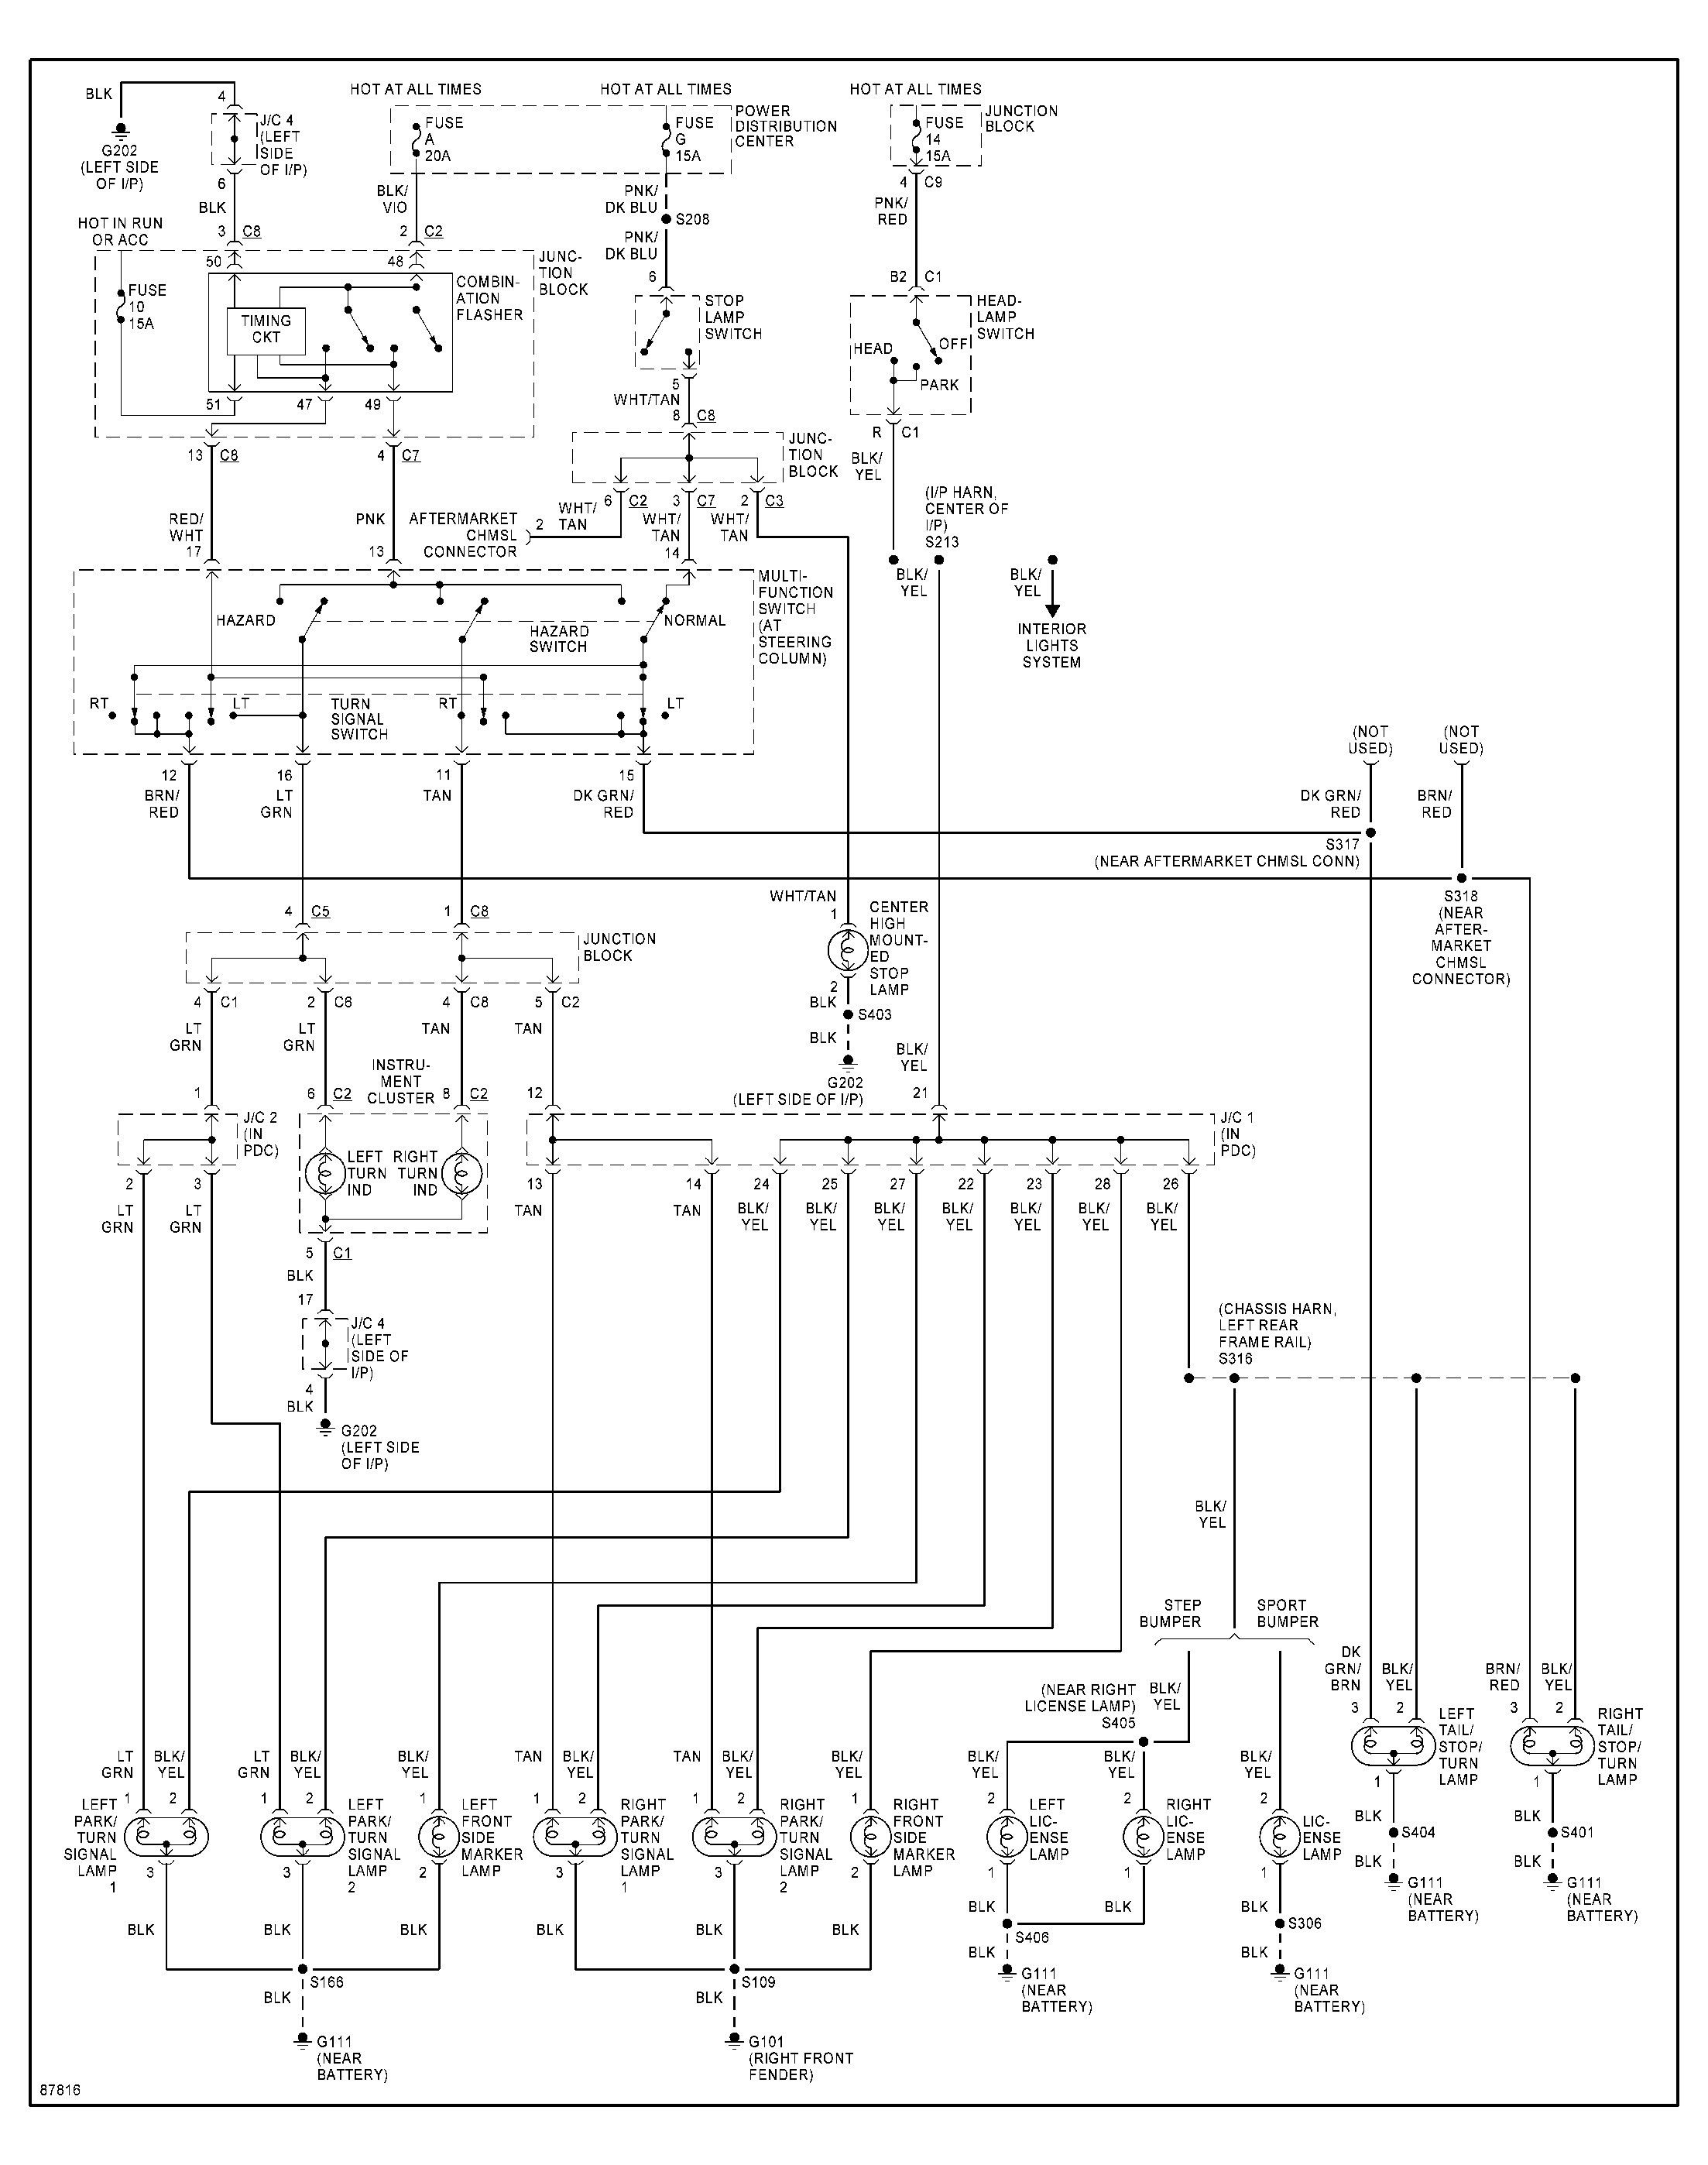 1990 dodge ram van wiring diagram - wiring diagrams gear-tunnel -  gear-tunnel.alcuoredeldiabete.it  al cuore del diabete